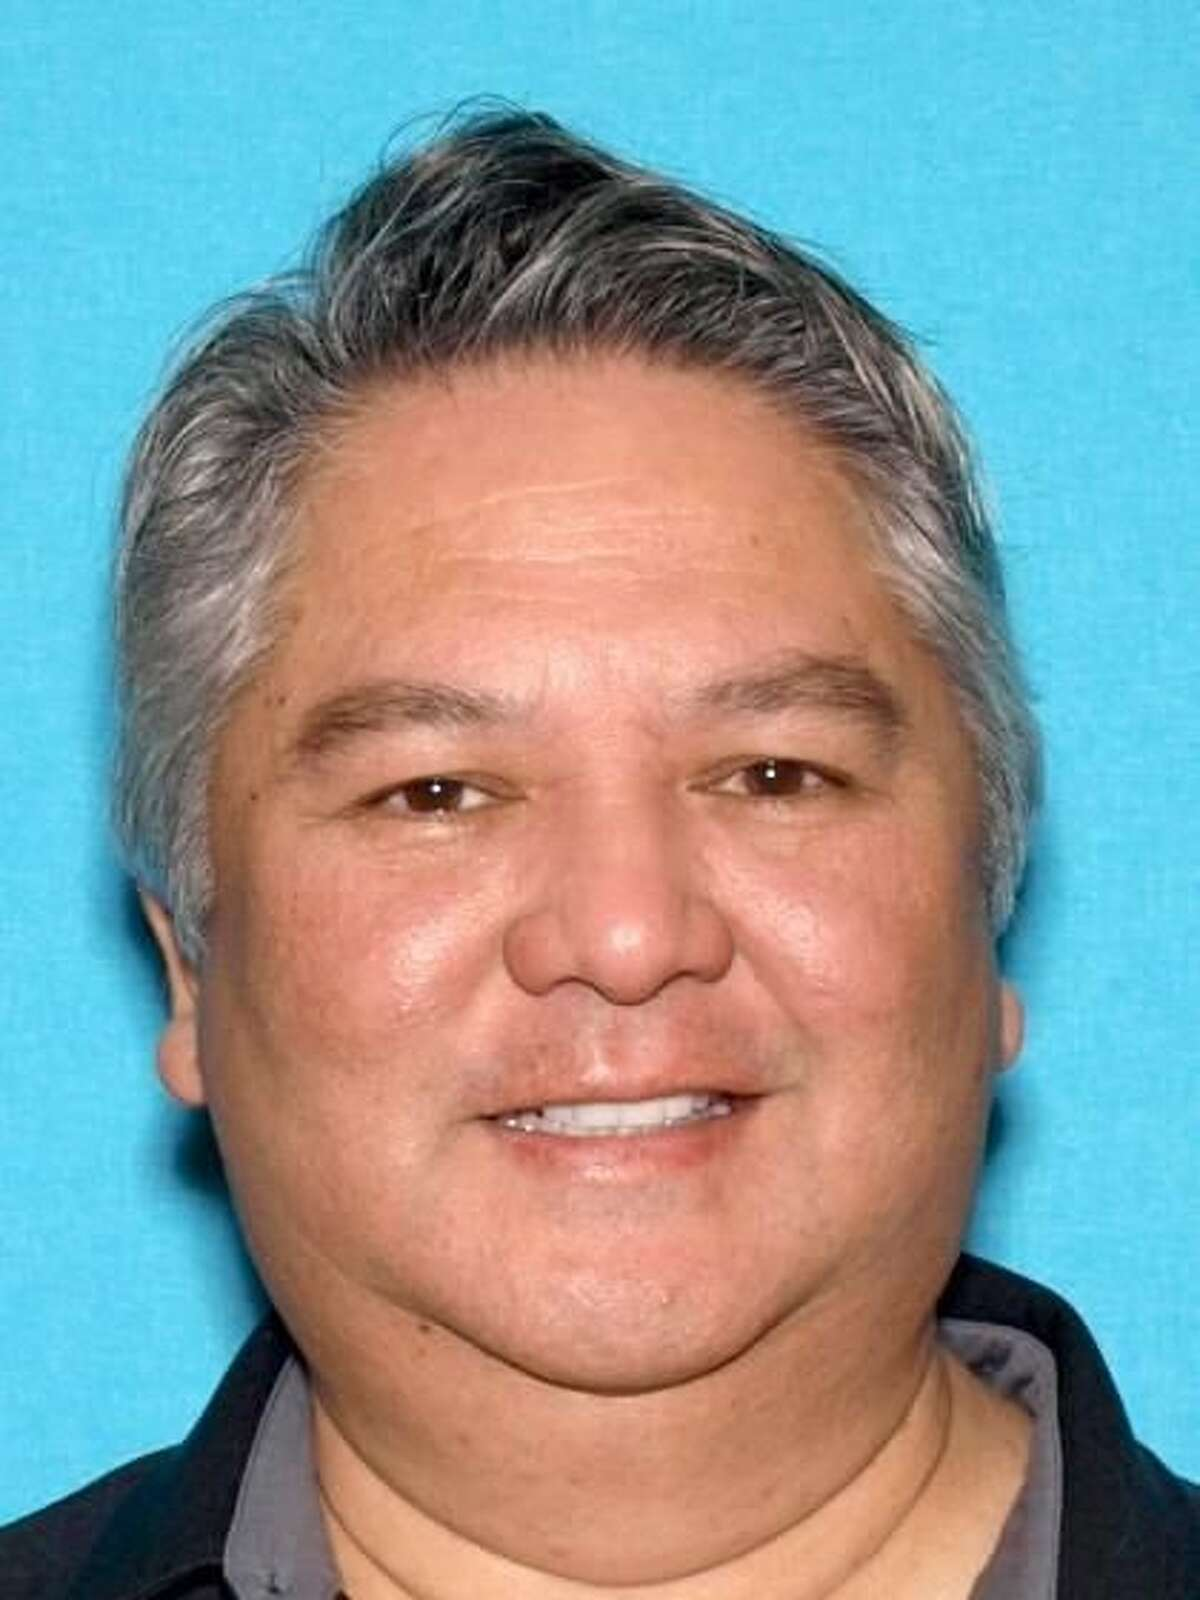 Ricardo Fernandez Delosreyes, 55, is wanted by San Bruno police Wednesday for allegedly trafficking a Filipina immigrant in a bid to exploit her labor as a caregiver. Authorities believe he is living in the Philippines.